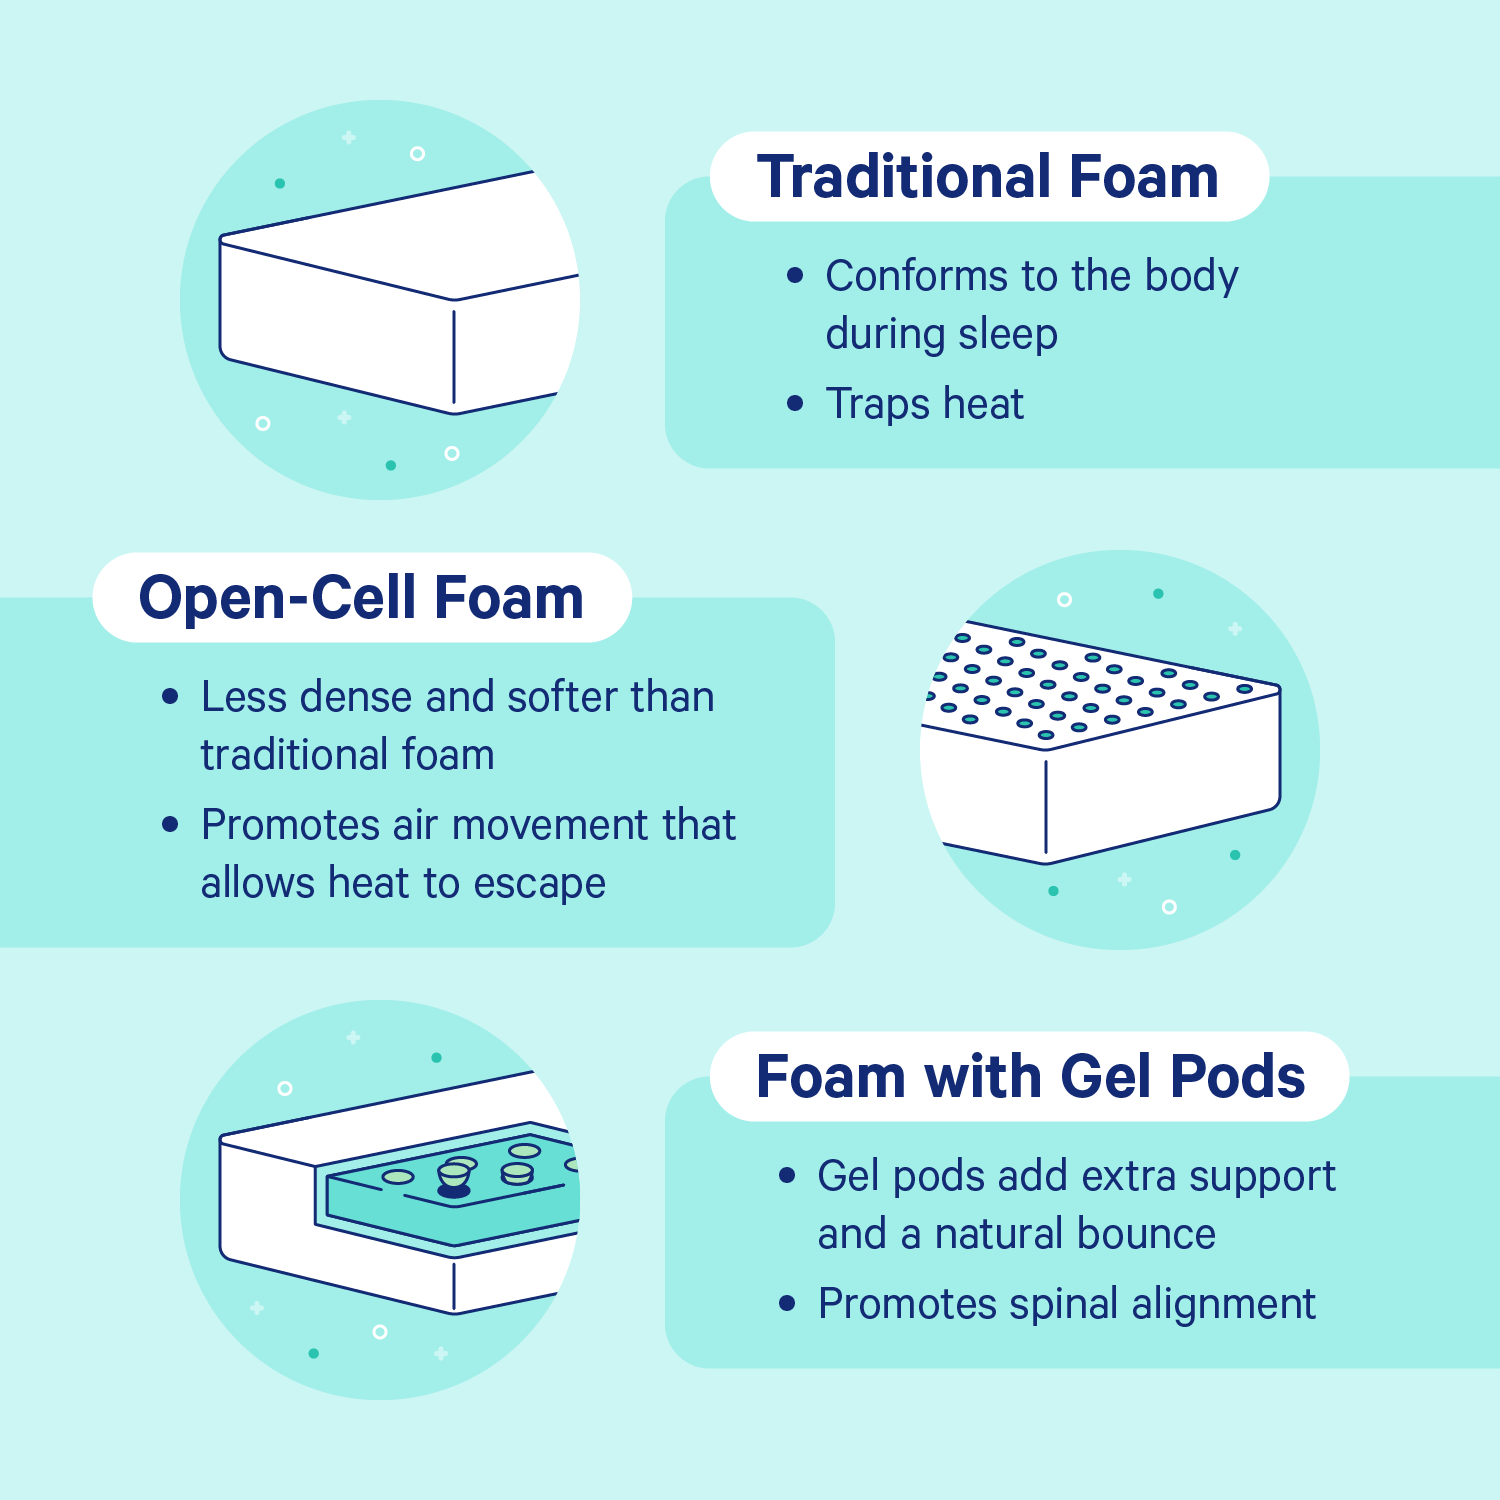 Different memory foam mattress types: traditional foam, open cell, and gel pod.